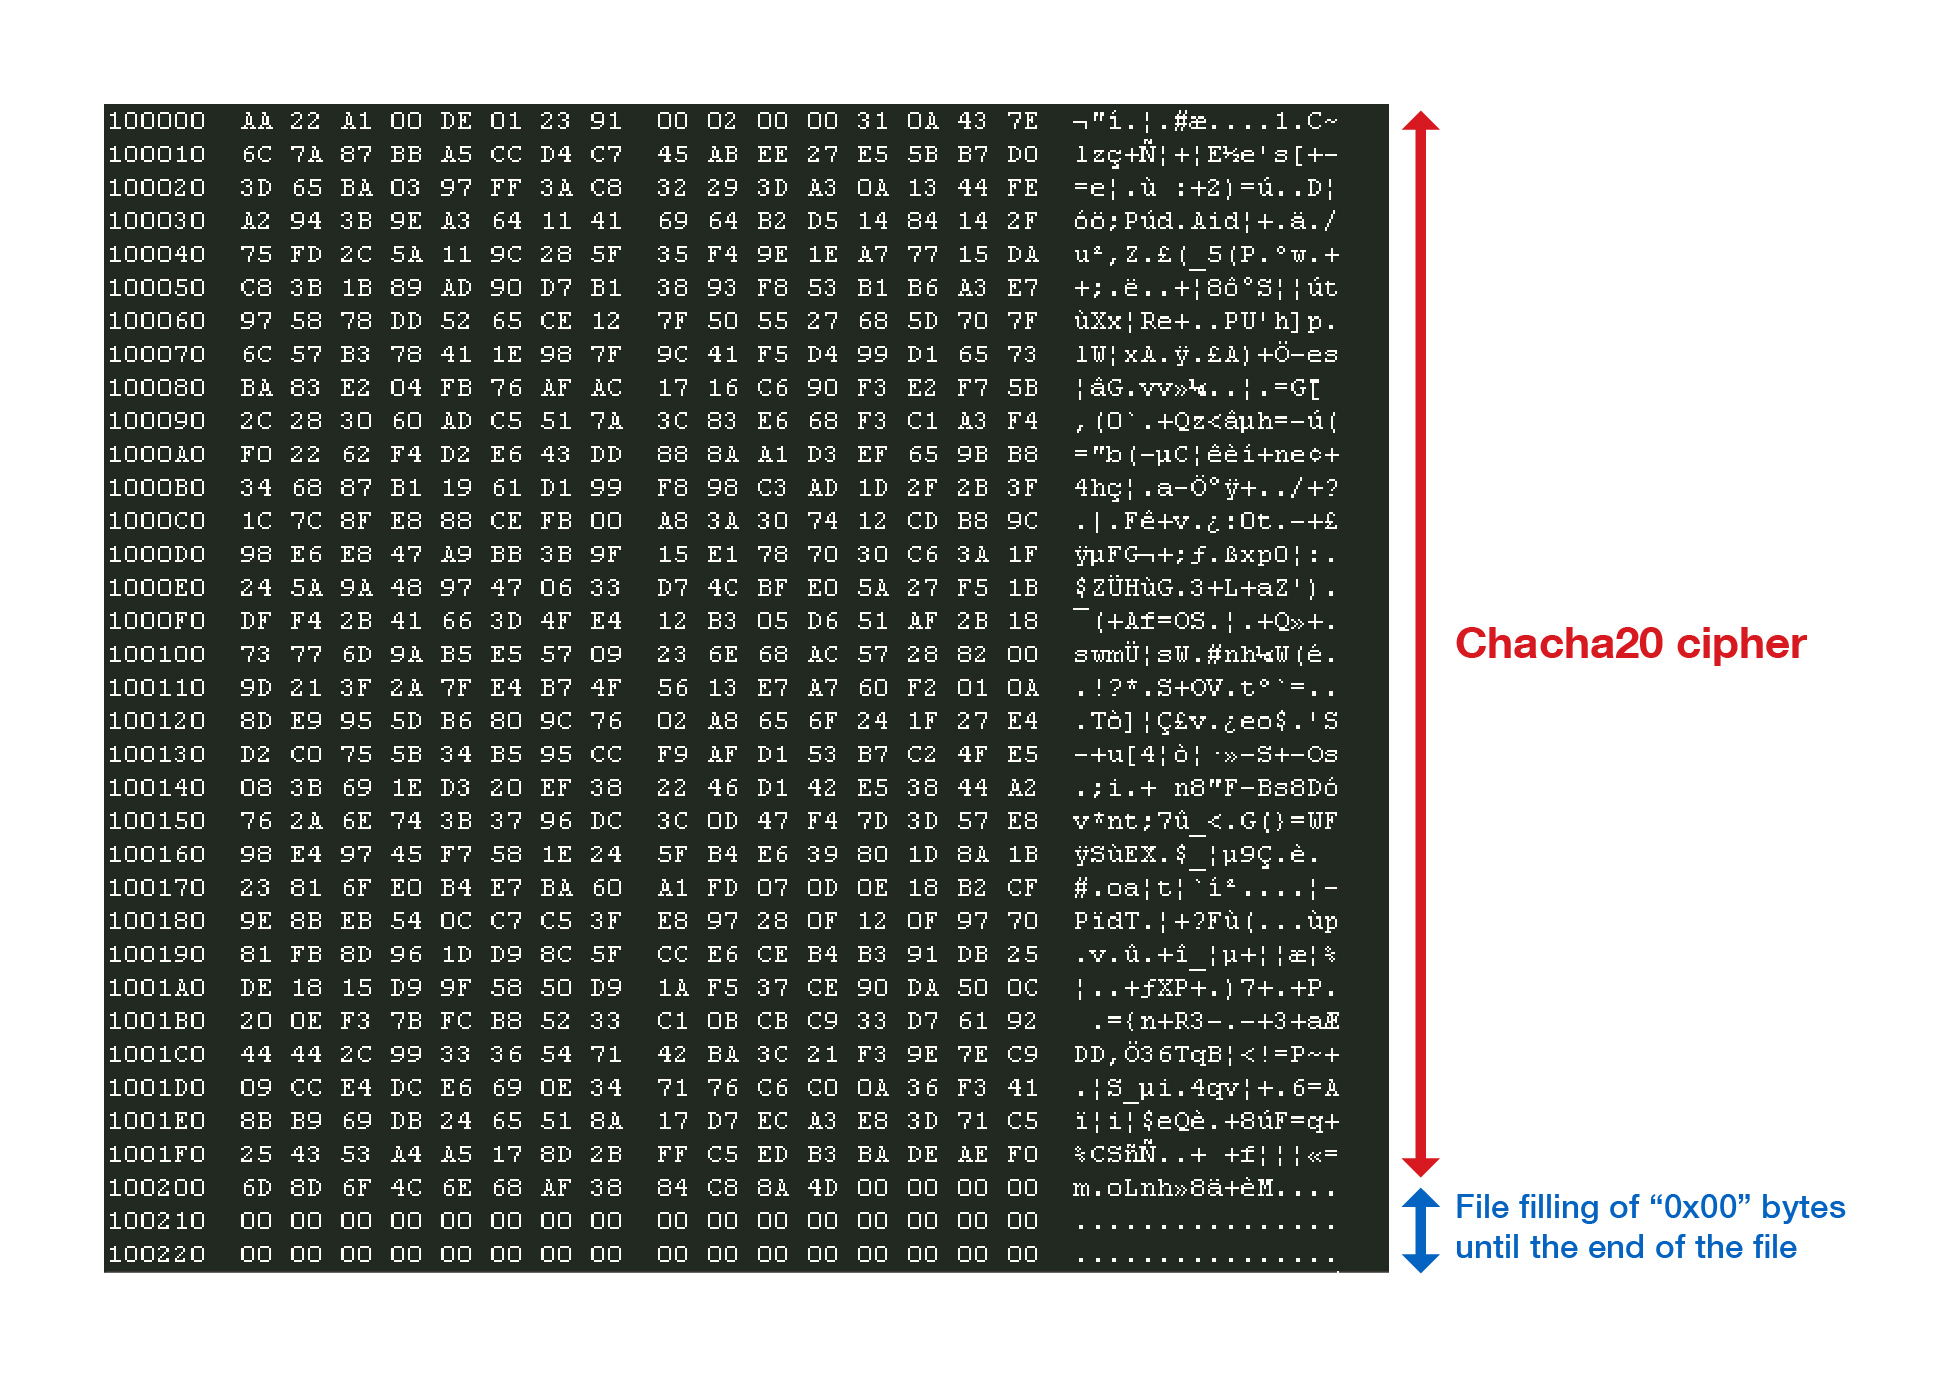 Hex view of the encrypted file